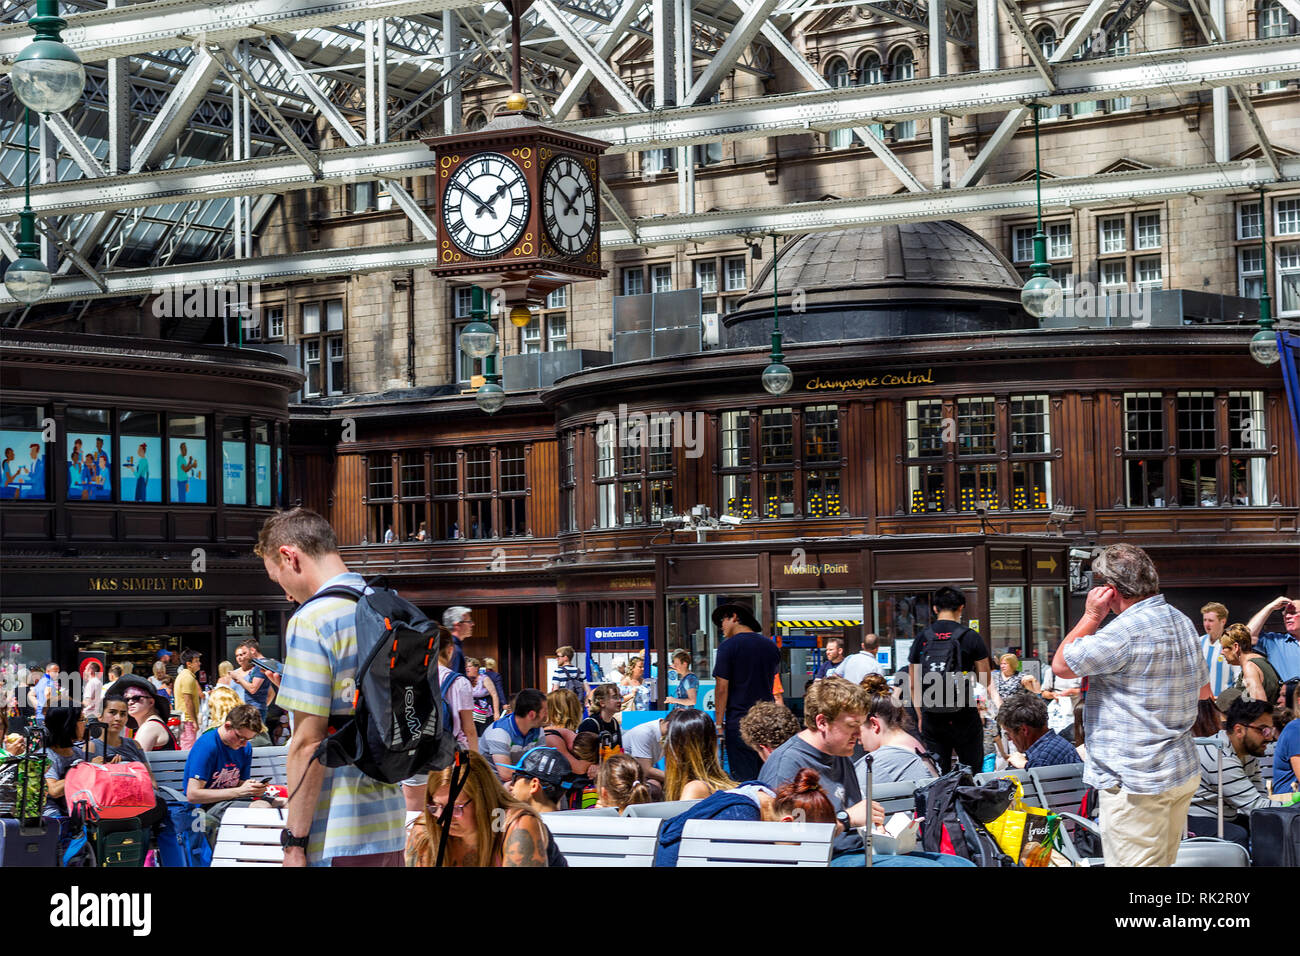 Glasgow Central, public concourse at Glasgow Central Station in Glasgow, UK Stock Photo